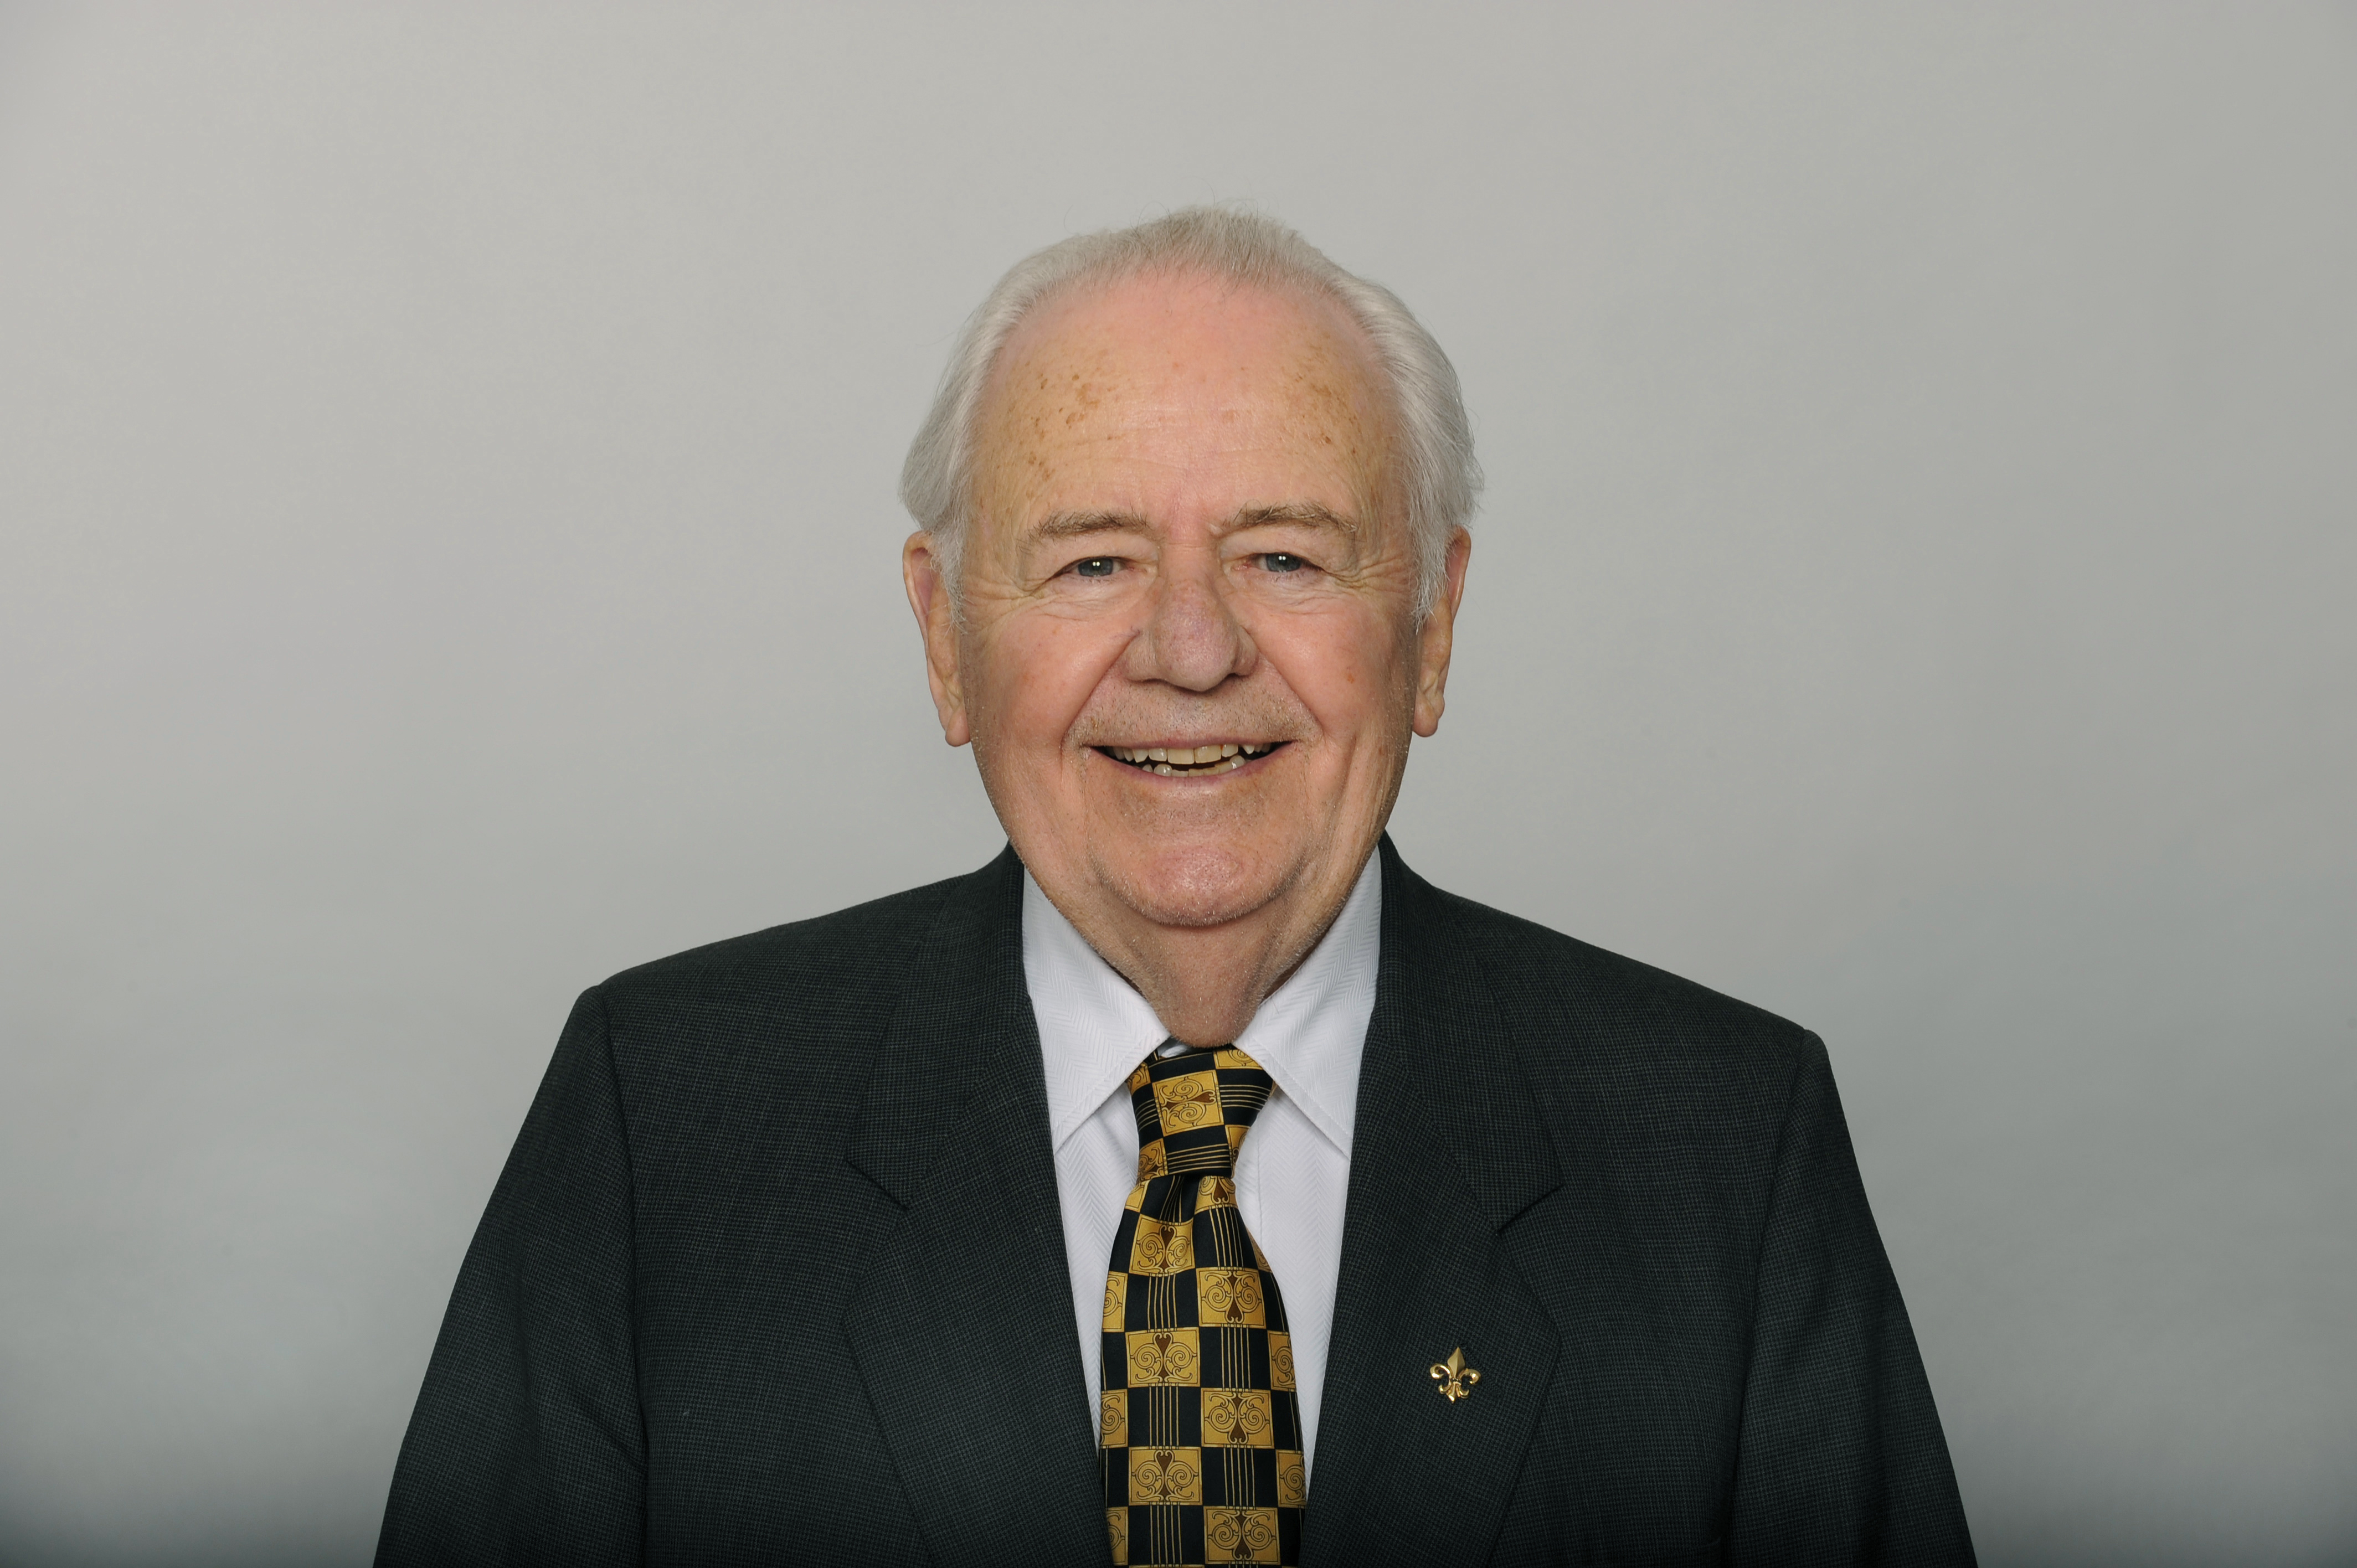 "File-This June 17, 2016, file photo shows Tom Benson of the New Orleans Saints NFL football team. Benson, a successful auto dealer who brought the New Orleans Saints their only winning seasons and the ""Benson Boogie,"" has died. Benson, who has also owned the NBA's New Orleans Pelicans since 2012, was 90. The NFL and NBA teams announced Benson's death on Thursday,  March 15, 2018.  (AP Photo/File)"